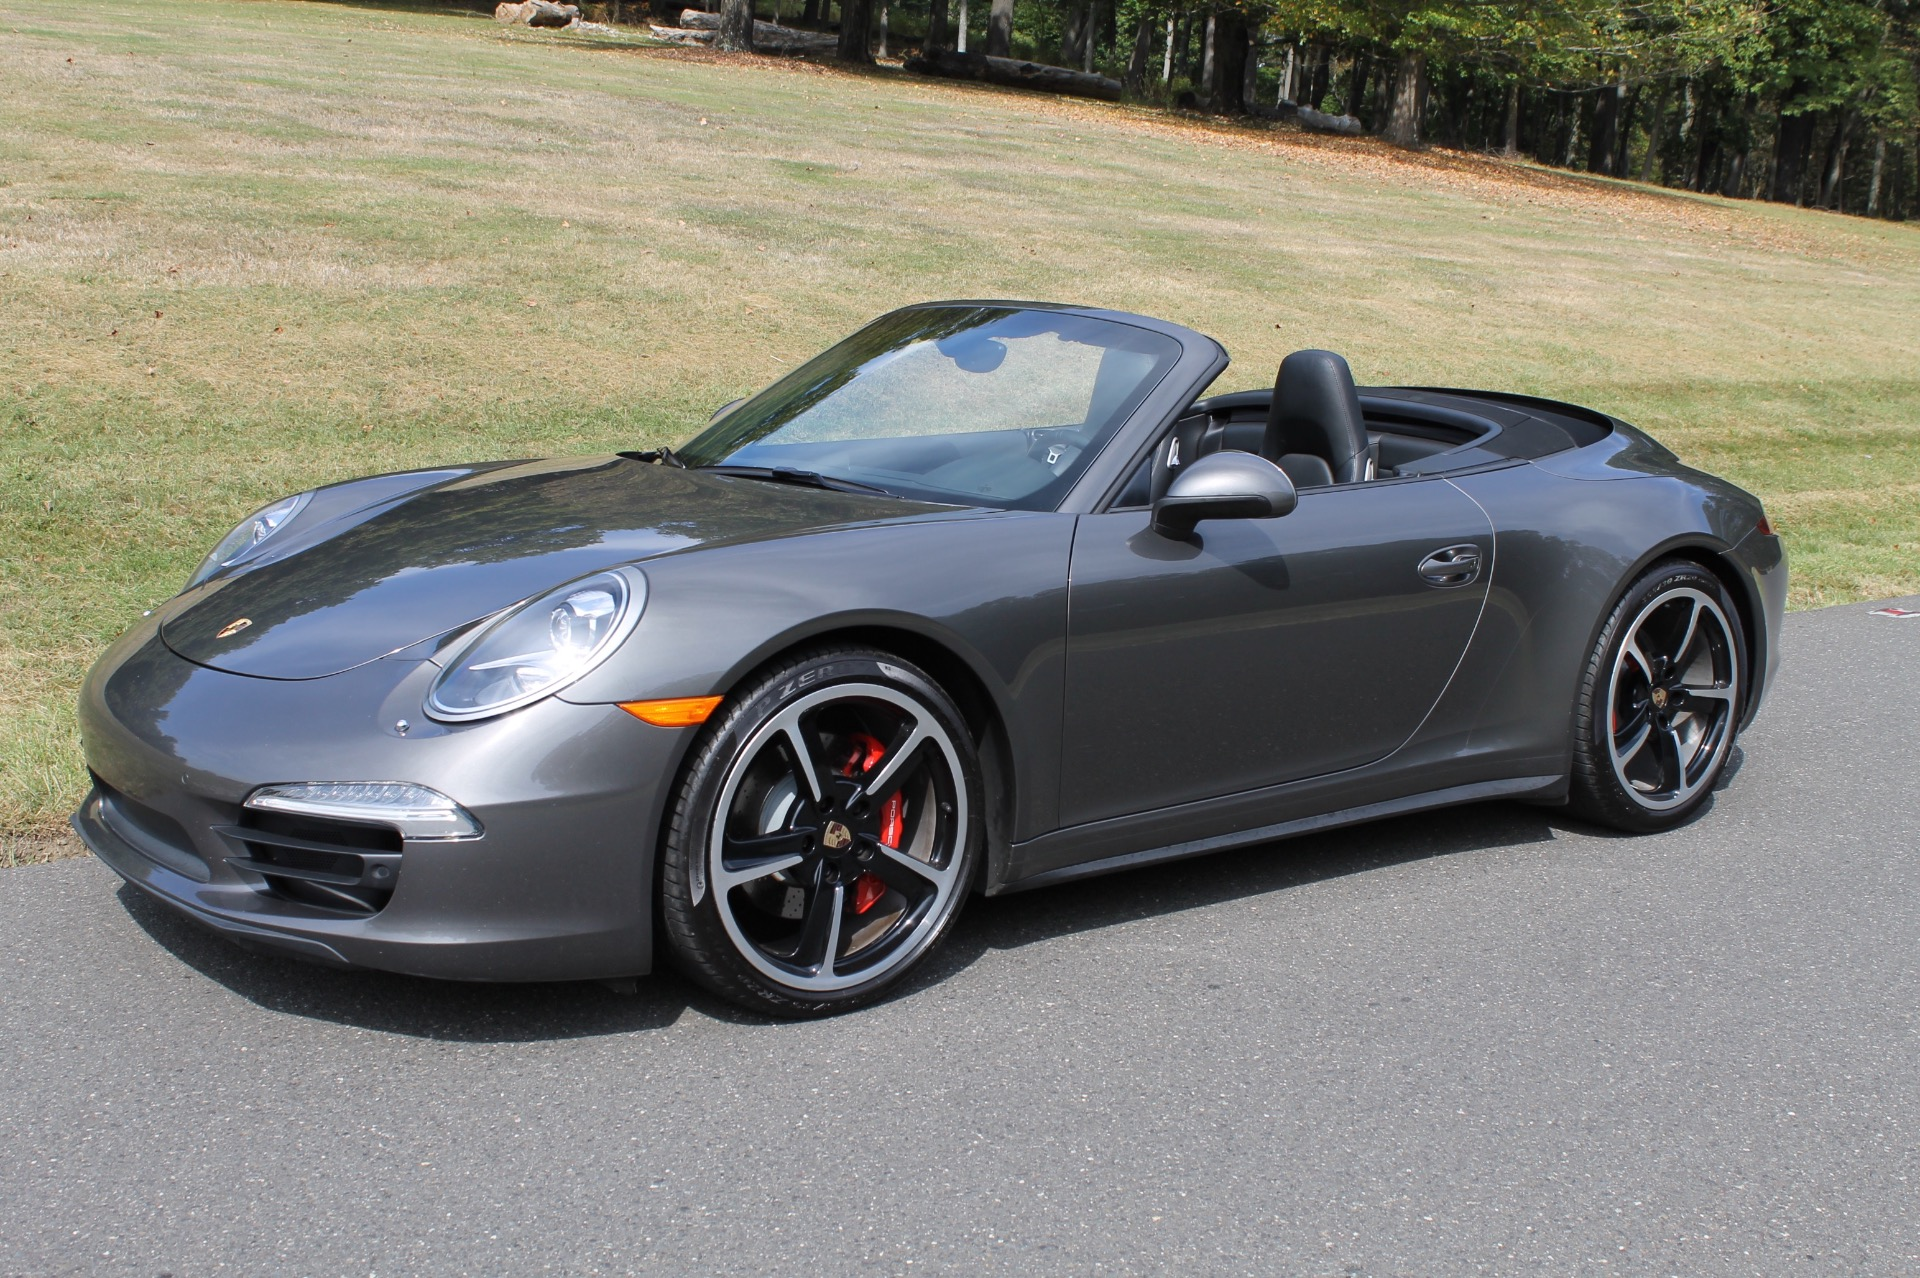 2014 porsche 911 carrera 4s 35 979 miles agate grey metallic convertible used porsche 911 for. Black Bedroom Furniture Sets. Home Design Ideas